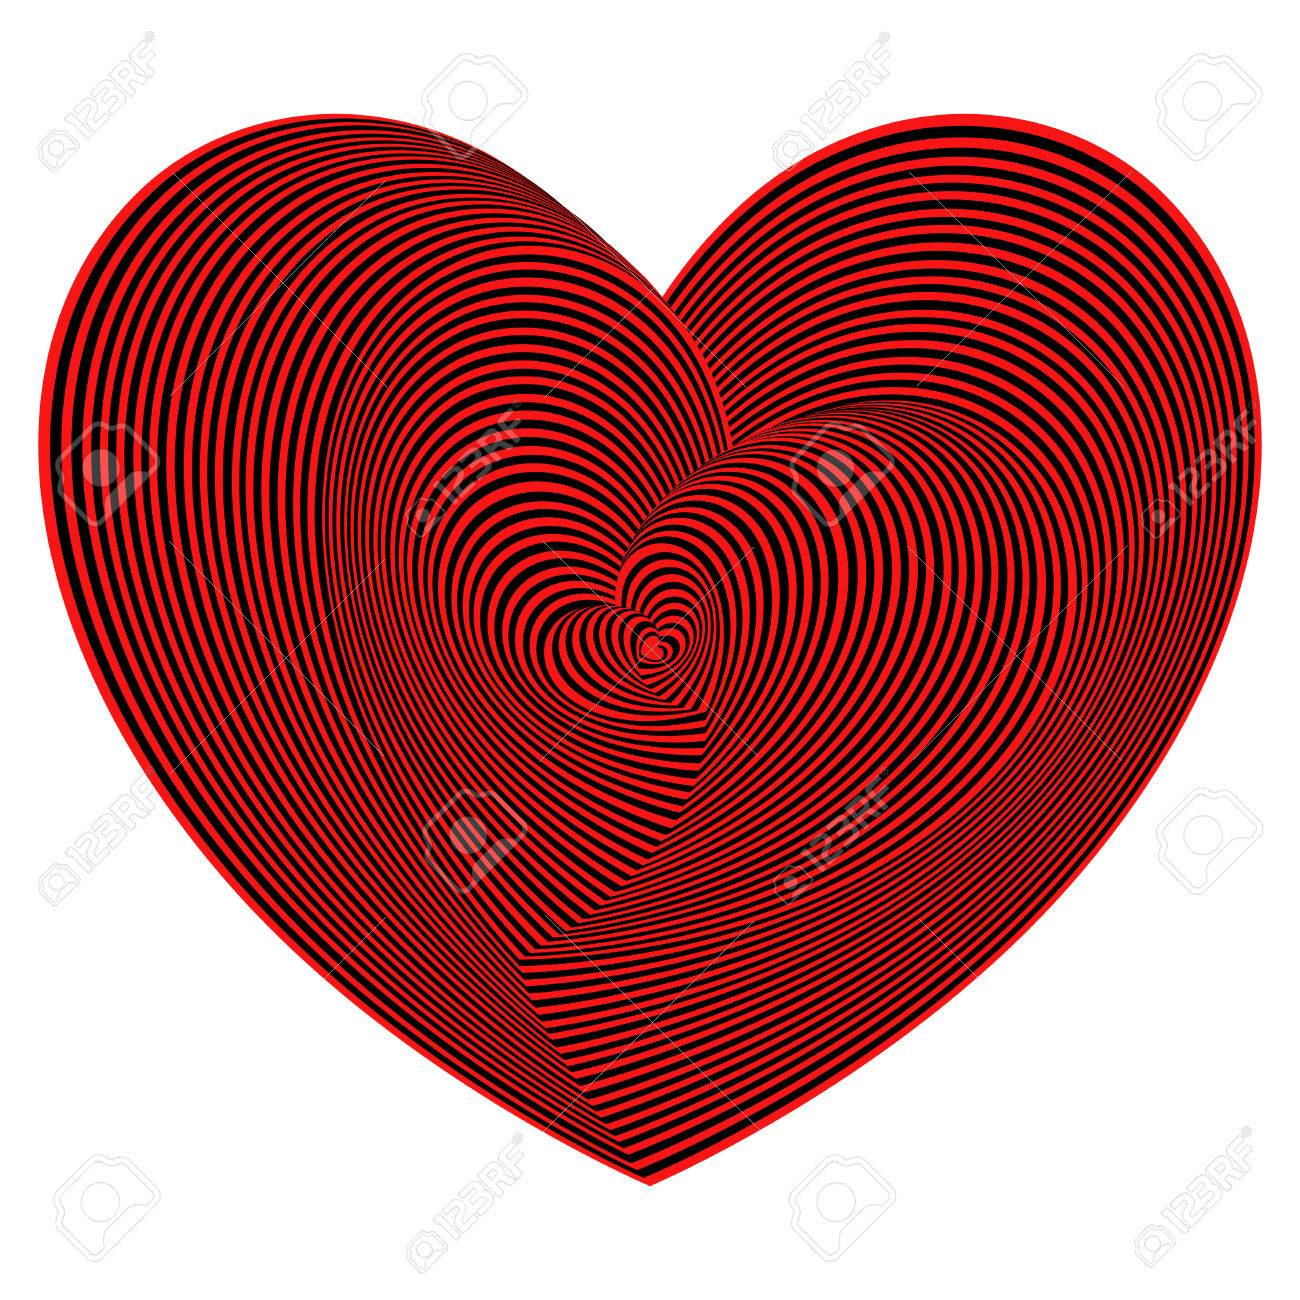 heart shapes sequence in red and black colors on the white